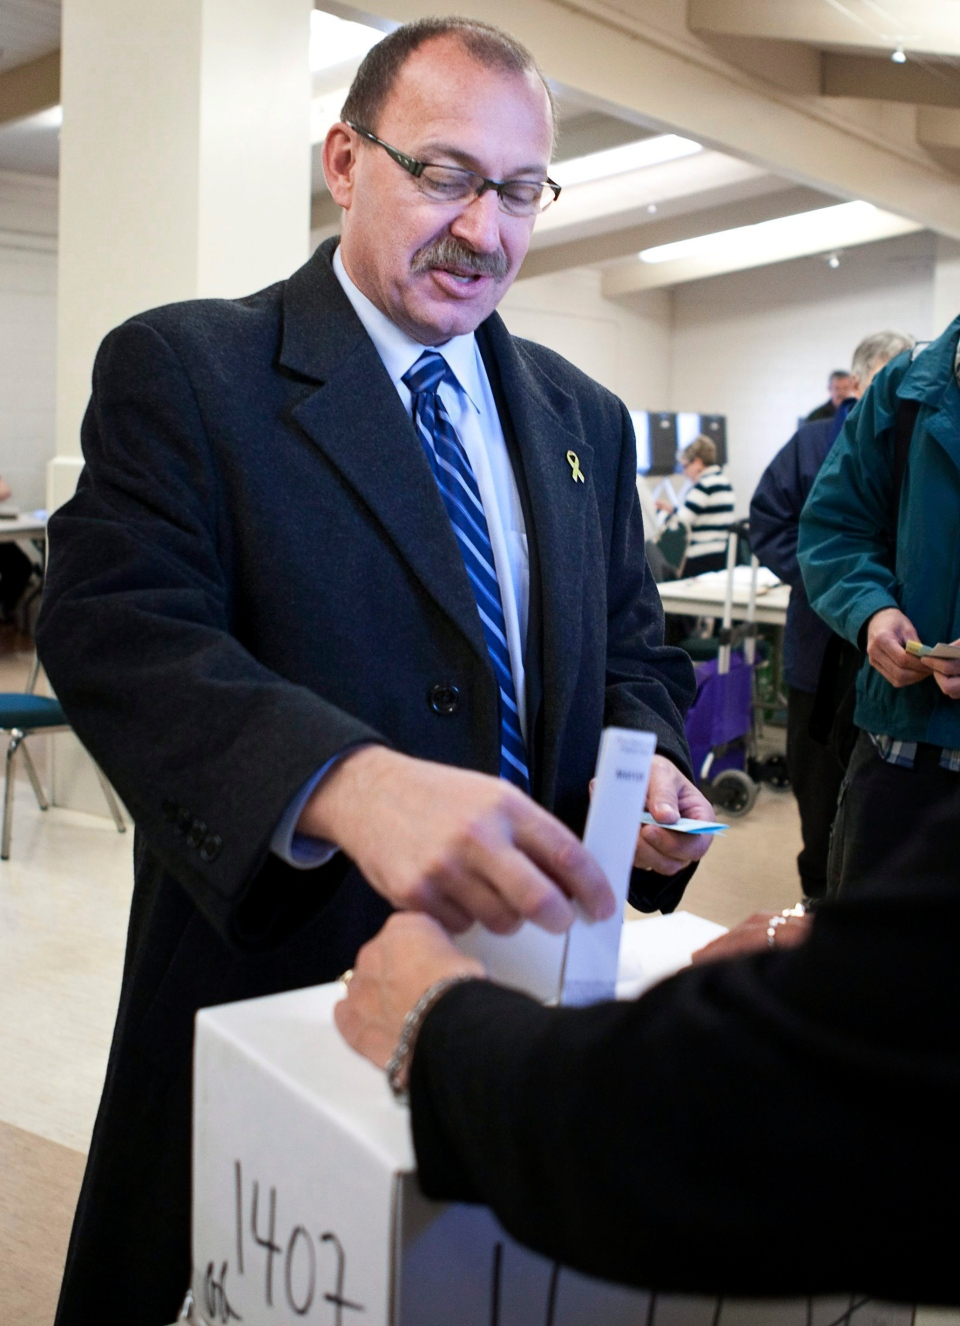 Ric McIver casts his ballot in the City of Calgary municipal election in Calgary, Monday, Oct. 18, 2010. (Jeff McIntosh / THE CANADIAN PRESS)